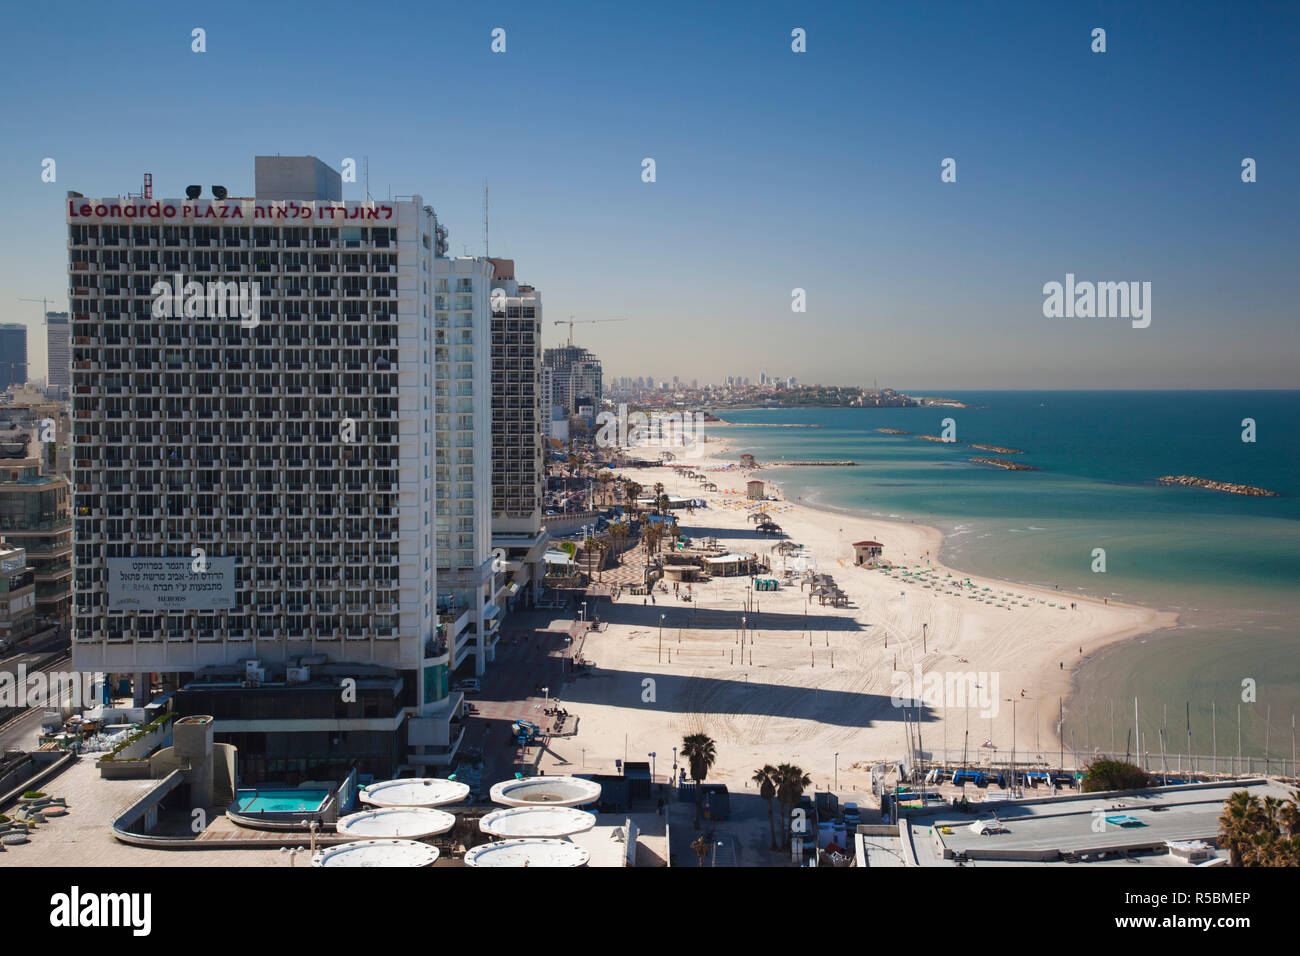 Israel, Tel Aviv, beachfront - Stock Image